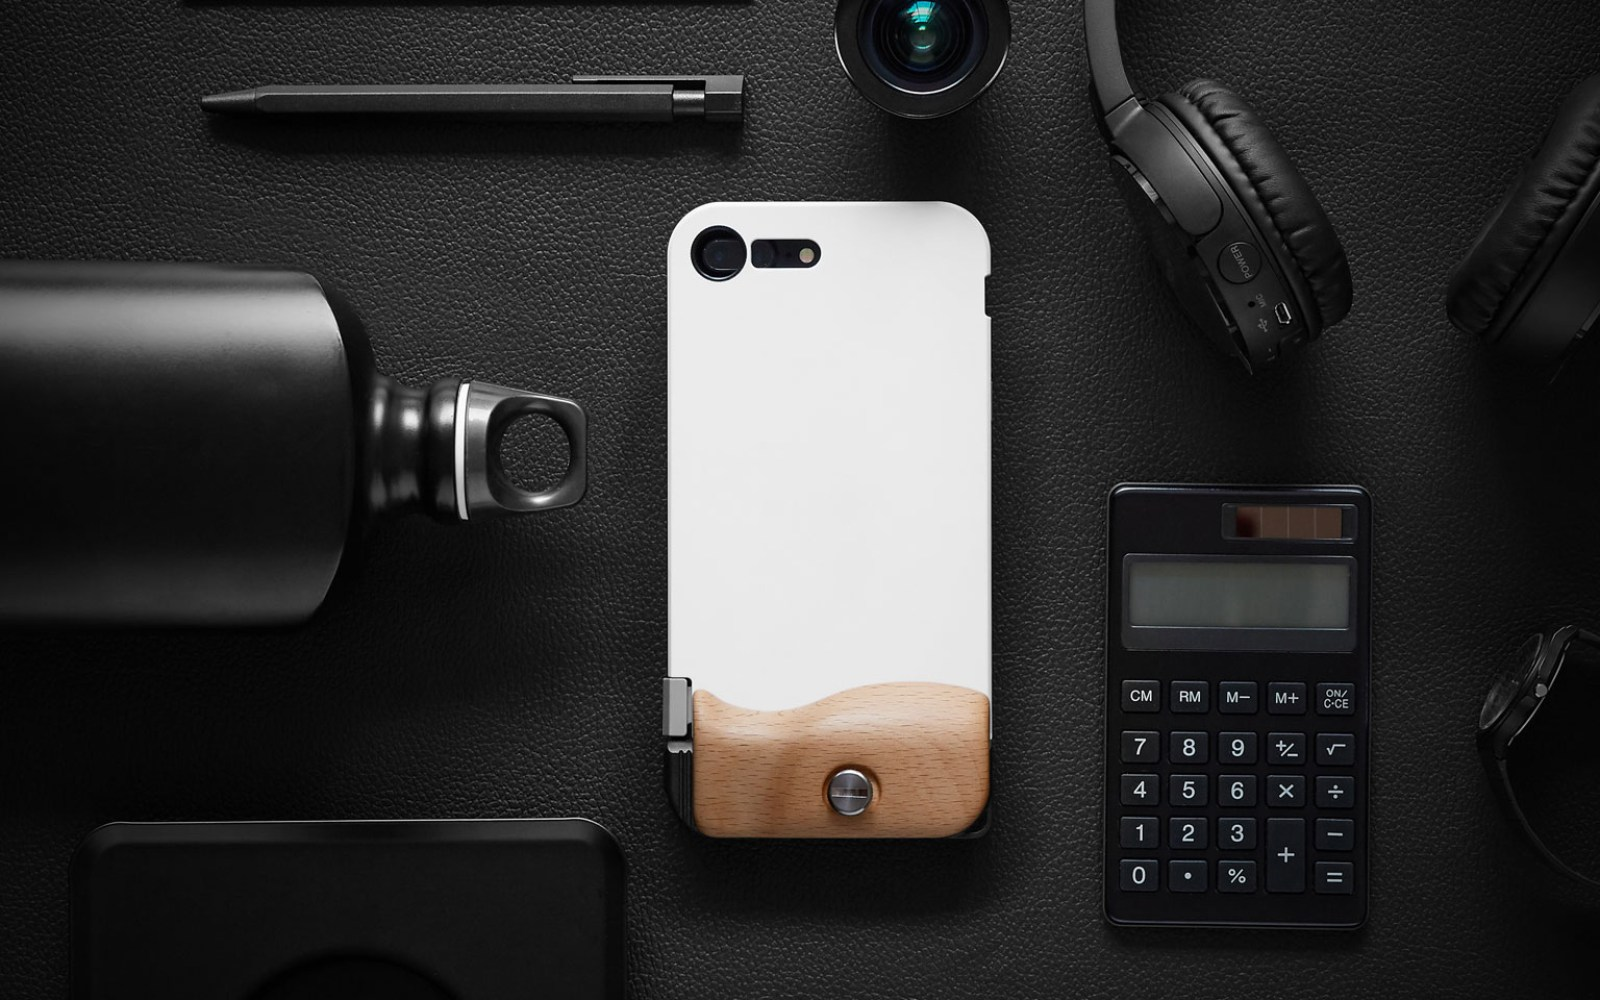 iPhone photographers will want to check out Bitplay's new accessory kit that brings DSLR looks and functionality